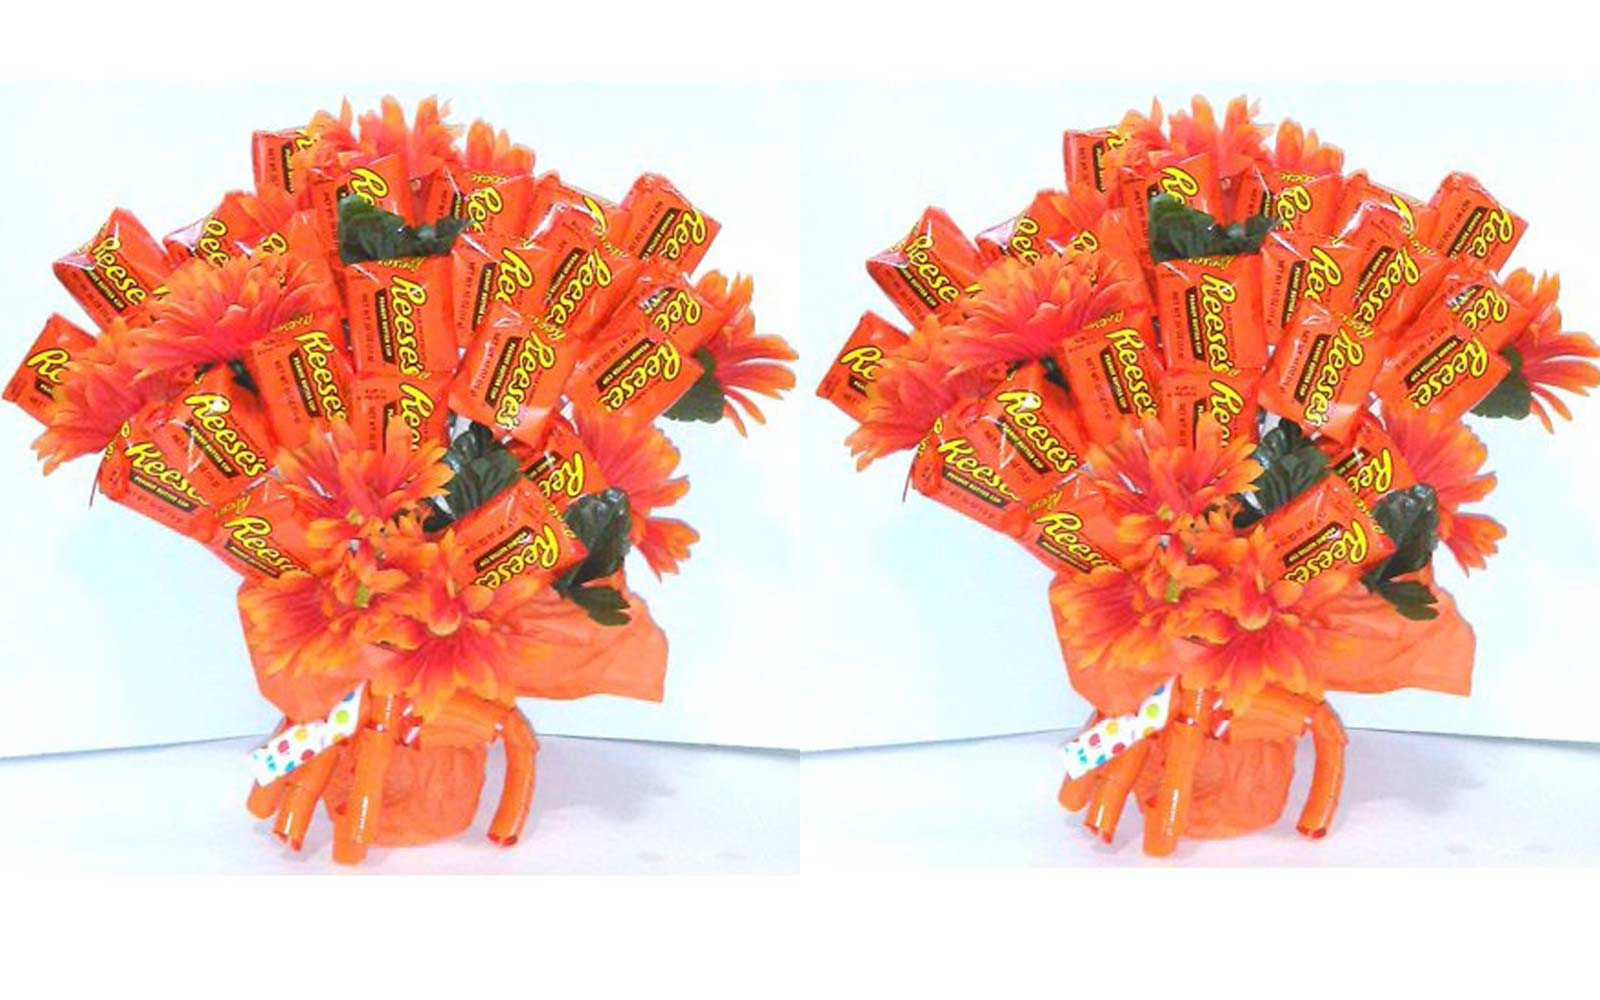 This Bouquet Made With 36 Packs of Reese's Peanut Butter Cups Is a Chocolate Lover's Dream Gift